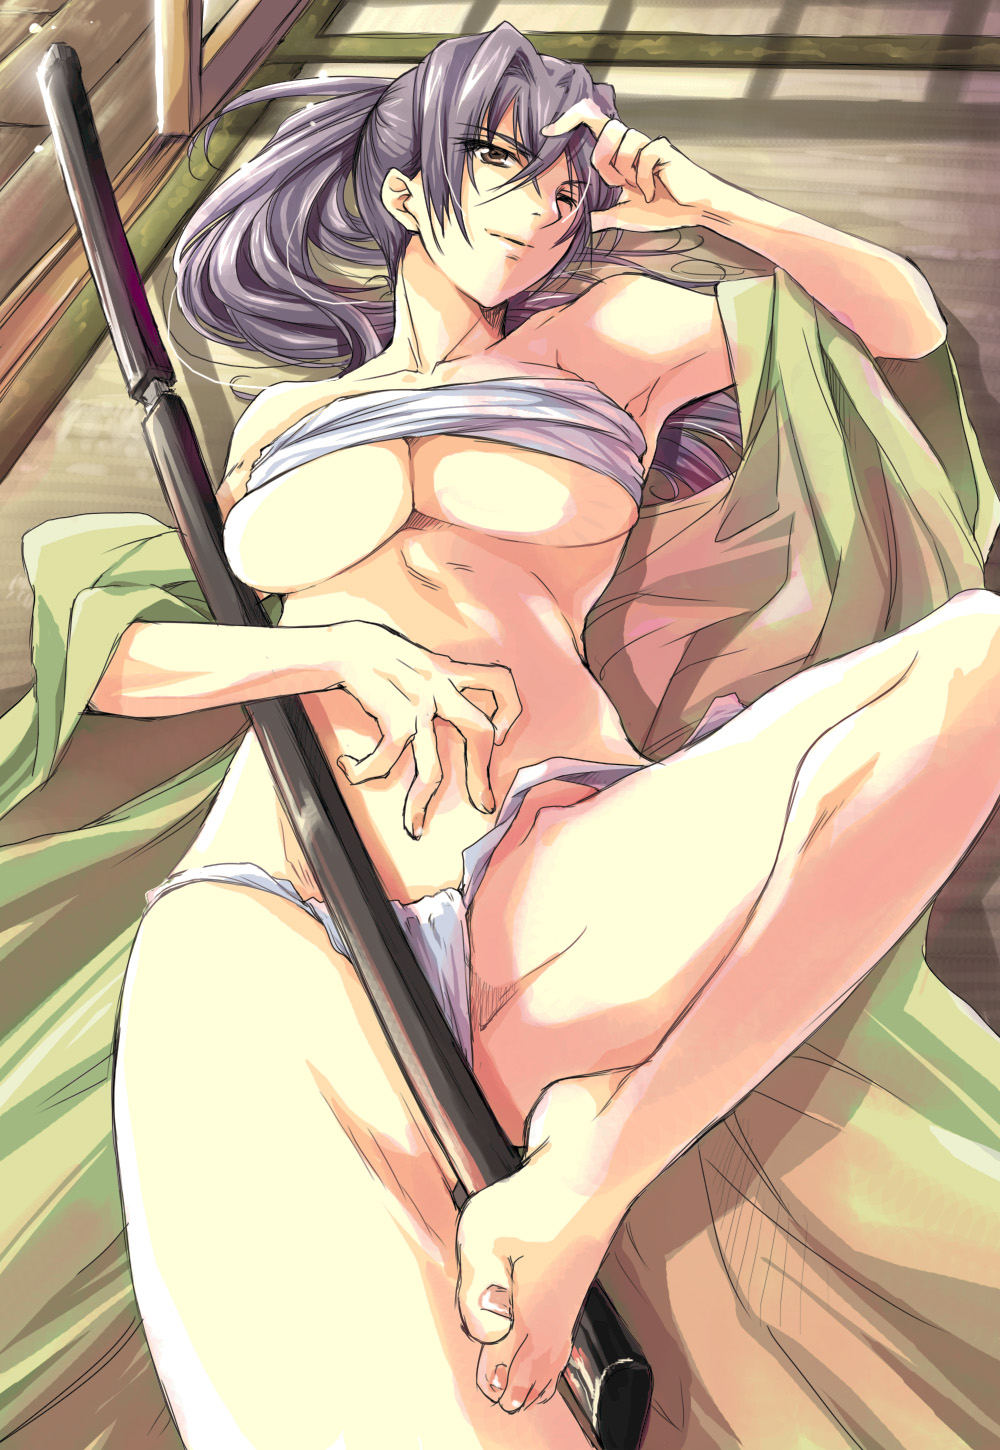 Adult anime war sexy gallery